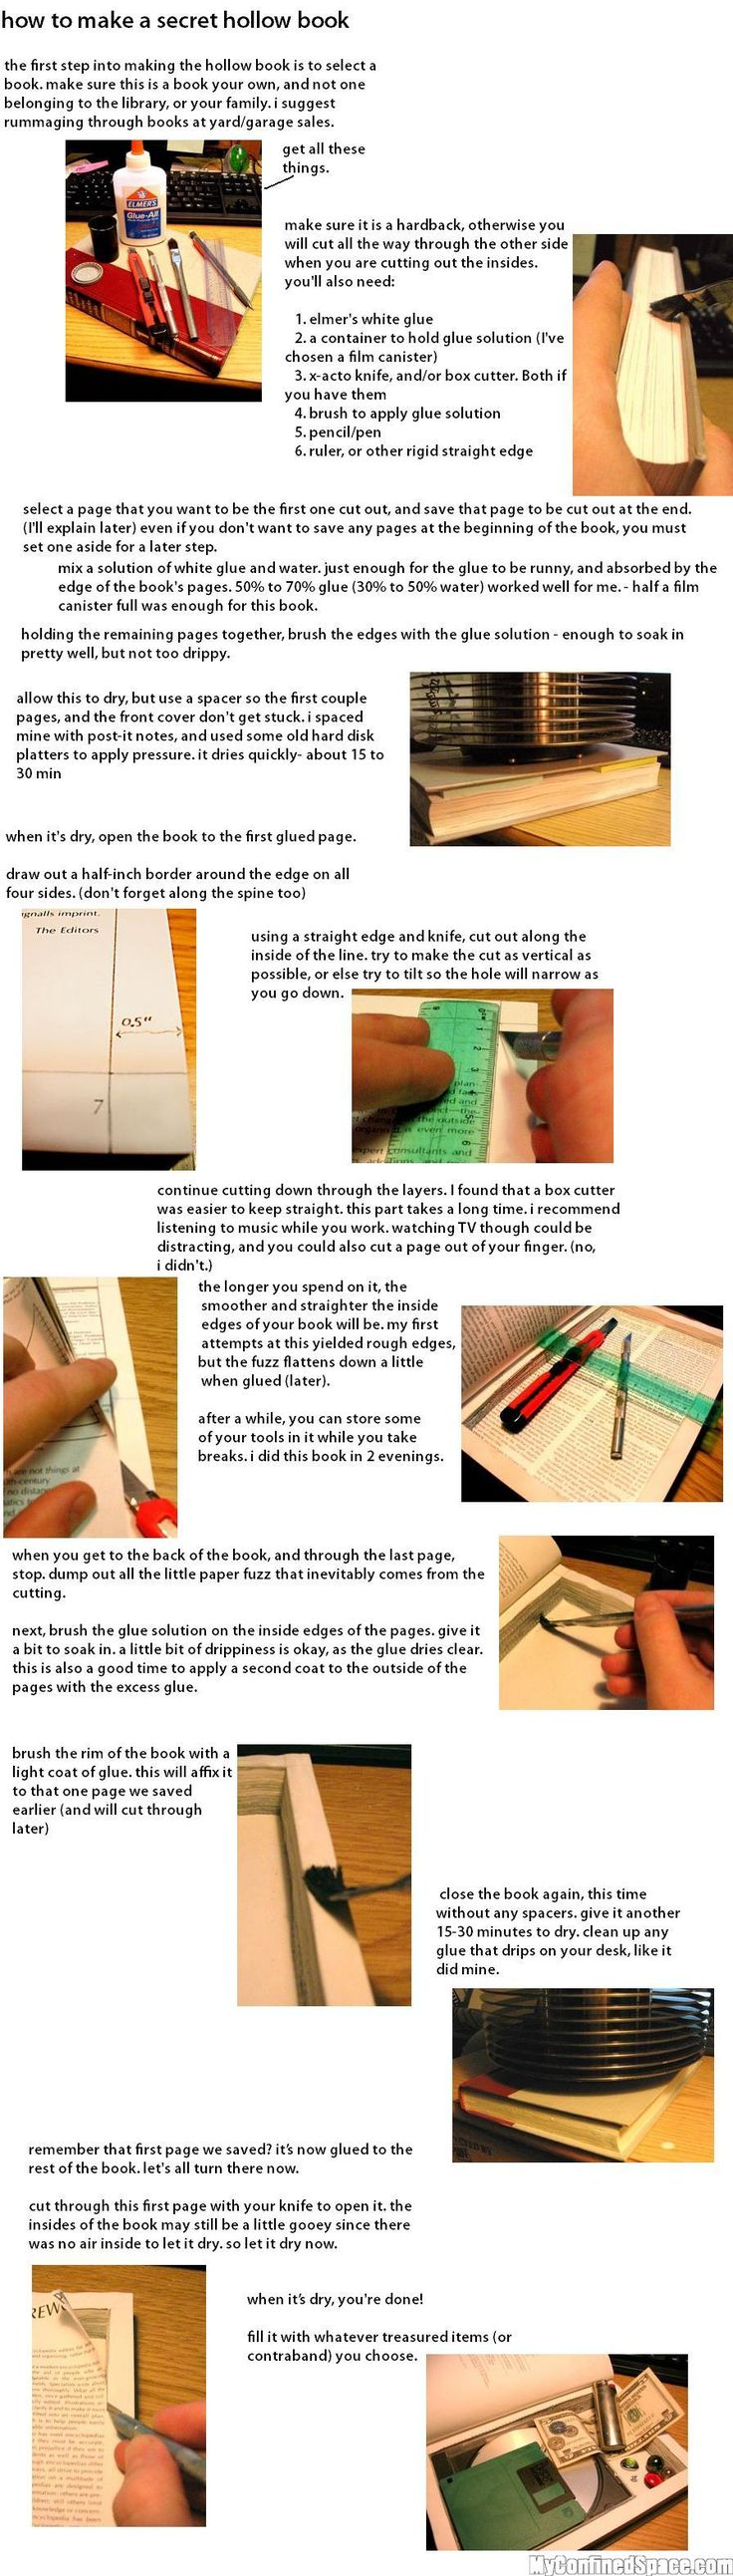 how to make a secret book!